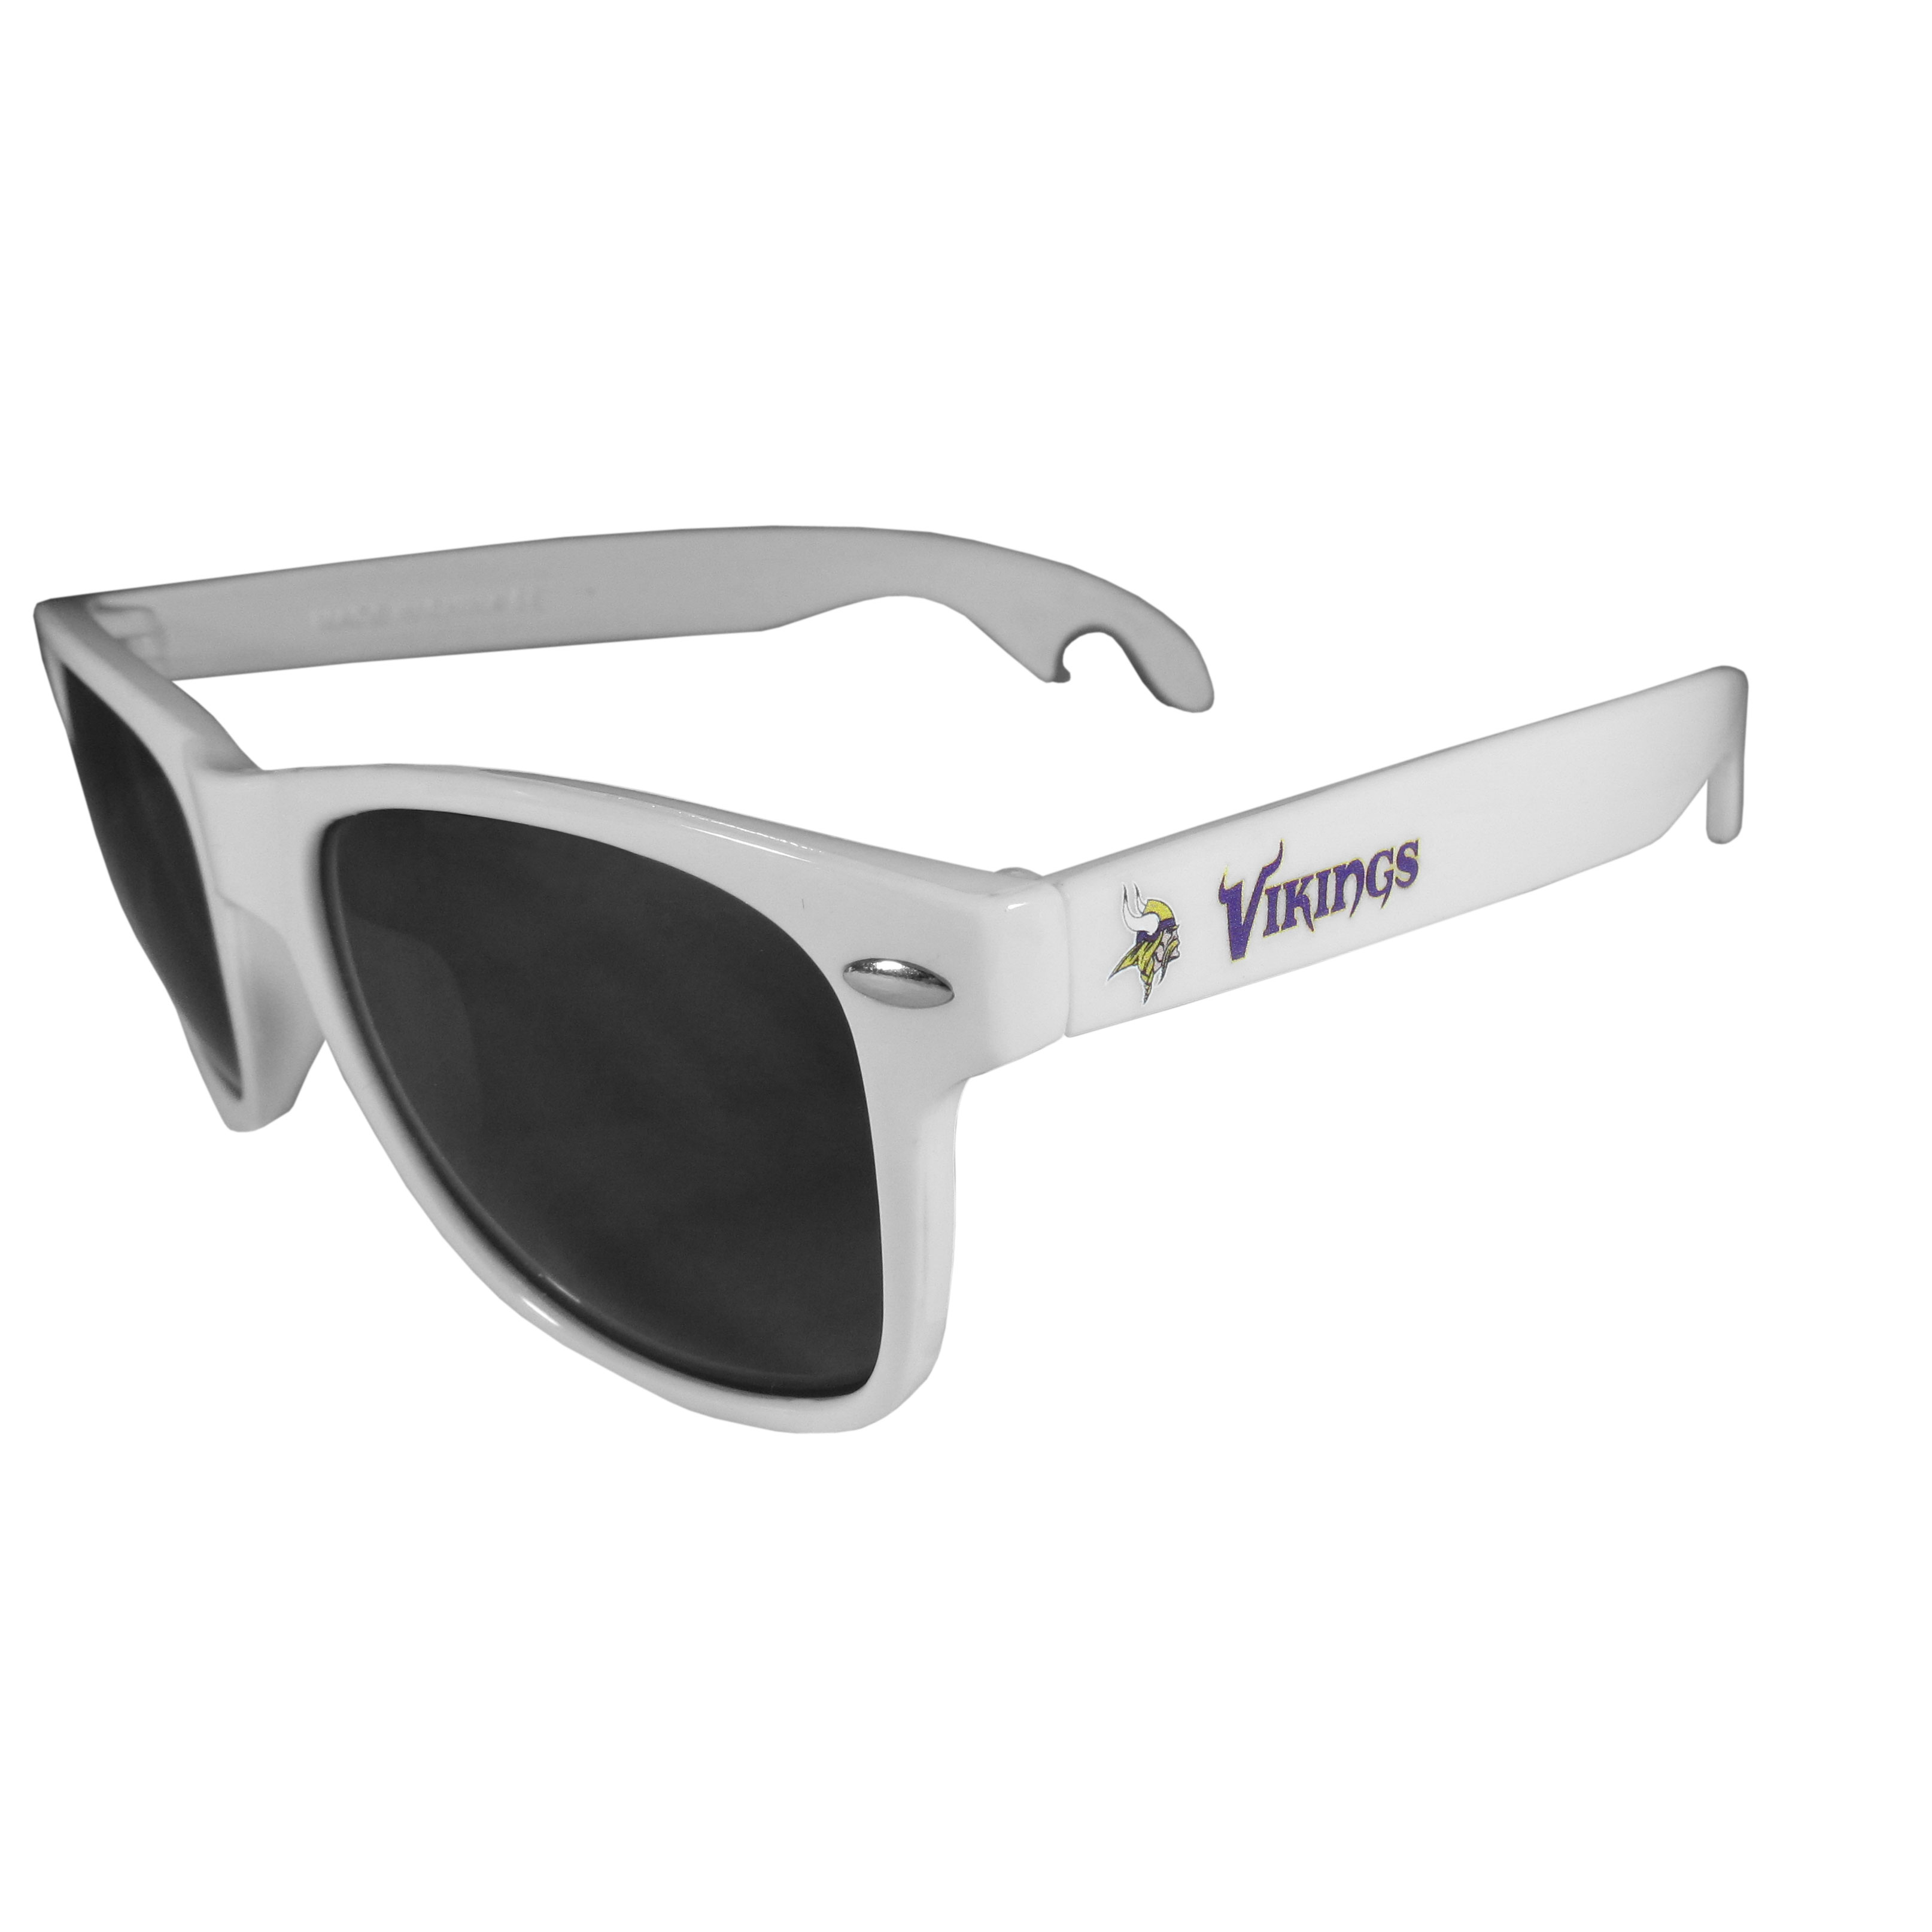 Minnesota Vikings Beachfarer Bottle Opener Sunglasses, White - Seriously, these sunglasses open bottles! Keep the party going with these amazing Minnesota Vikings bottle opener sunglasses. The stylish retro frames feature team designs on the arms and functional bottle openers on the end of the arms. Whether you are at the beach or having a backyard BBQ on game day, these shades will keep your eyes protected with 100% UVA/UVB protection and keep you hydrated with the handy bottle opener arms.